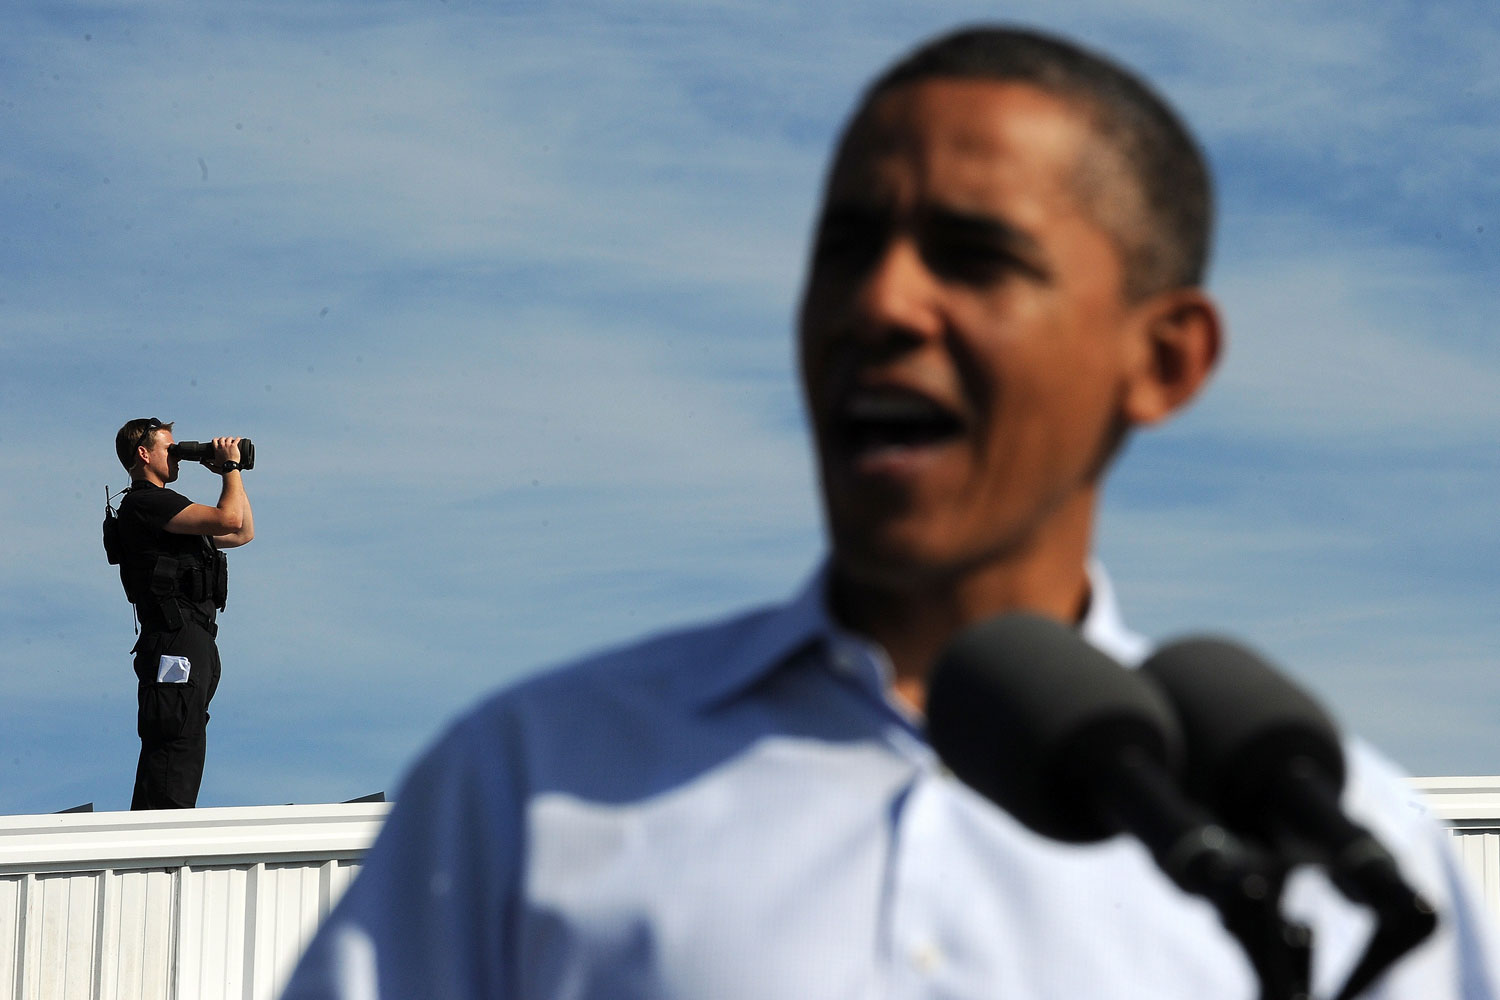 October 17, 2011. An agent scans the area from a rooftop as President Barack Obama speaks at the Asheville Regional Airport in Fletcher, North Carolina, during the first day of his three-day American Jobs Act bus tour to discuss jobs and the economy.